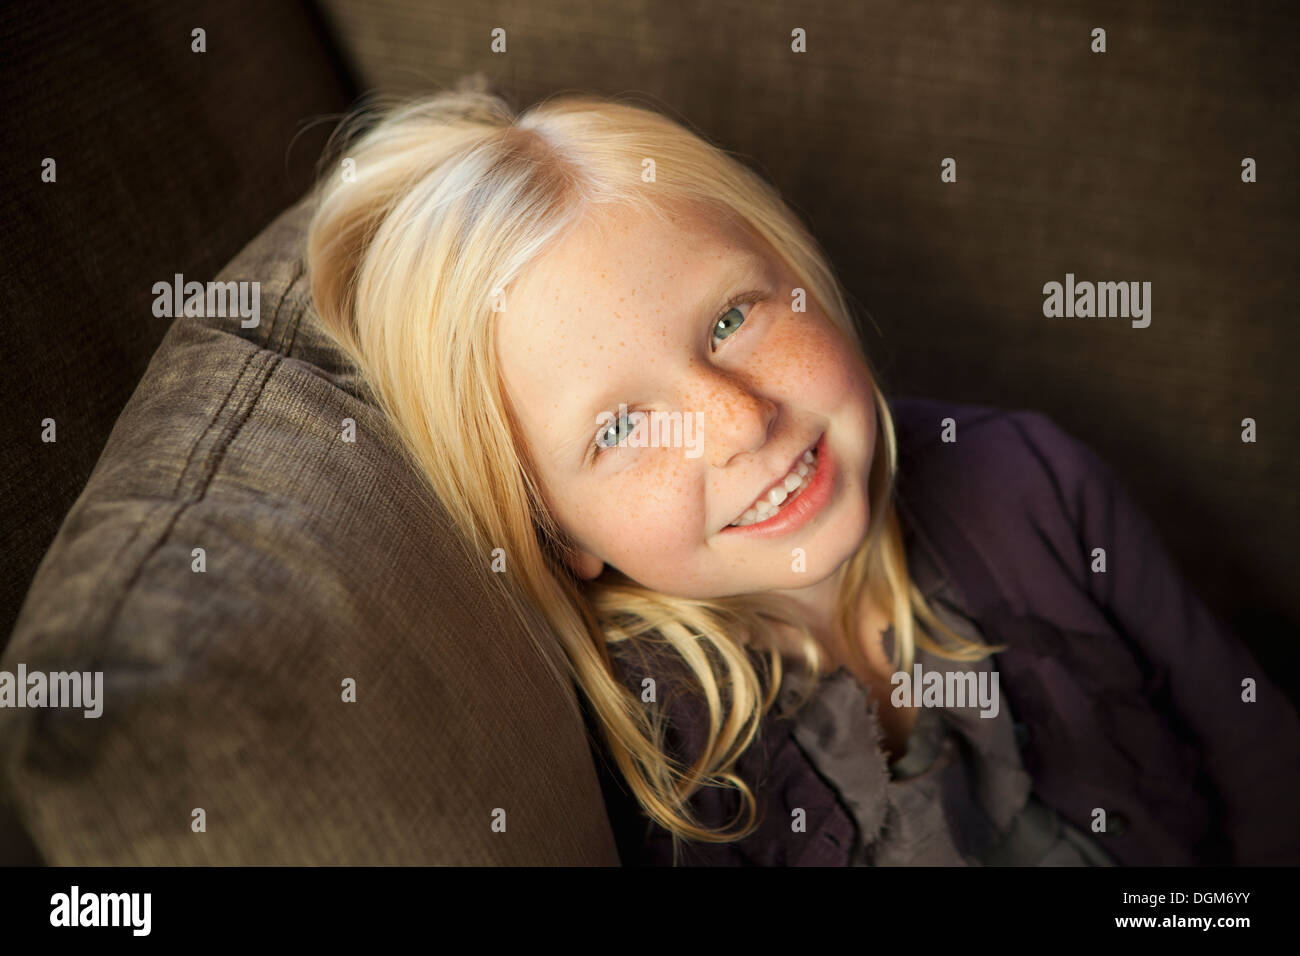 A girl sitting on a couch, smiling at the camera. - Stock Image